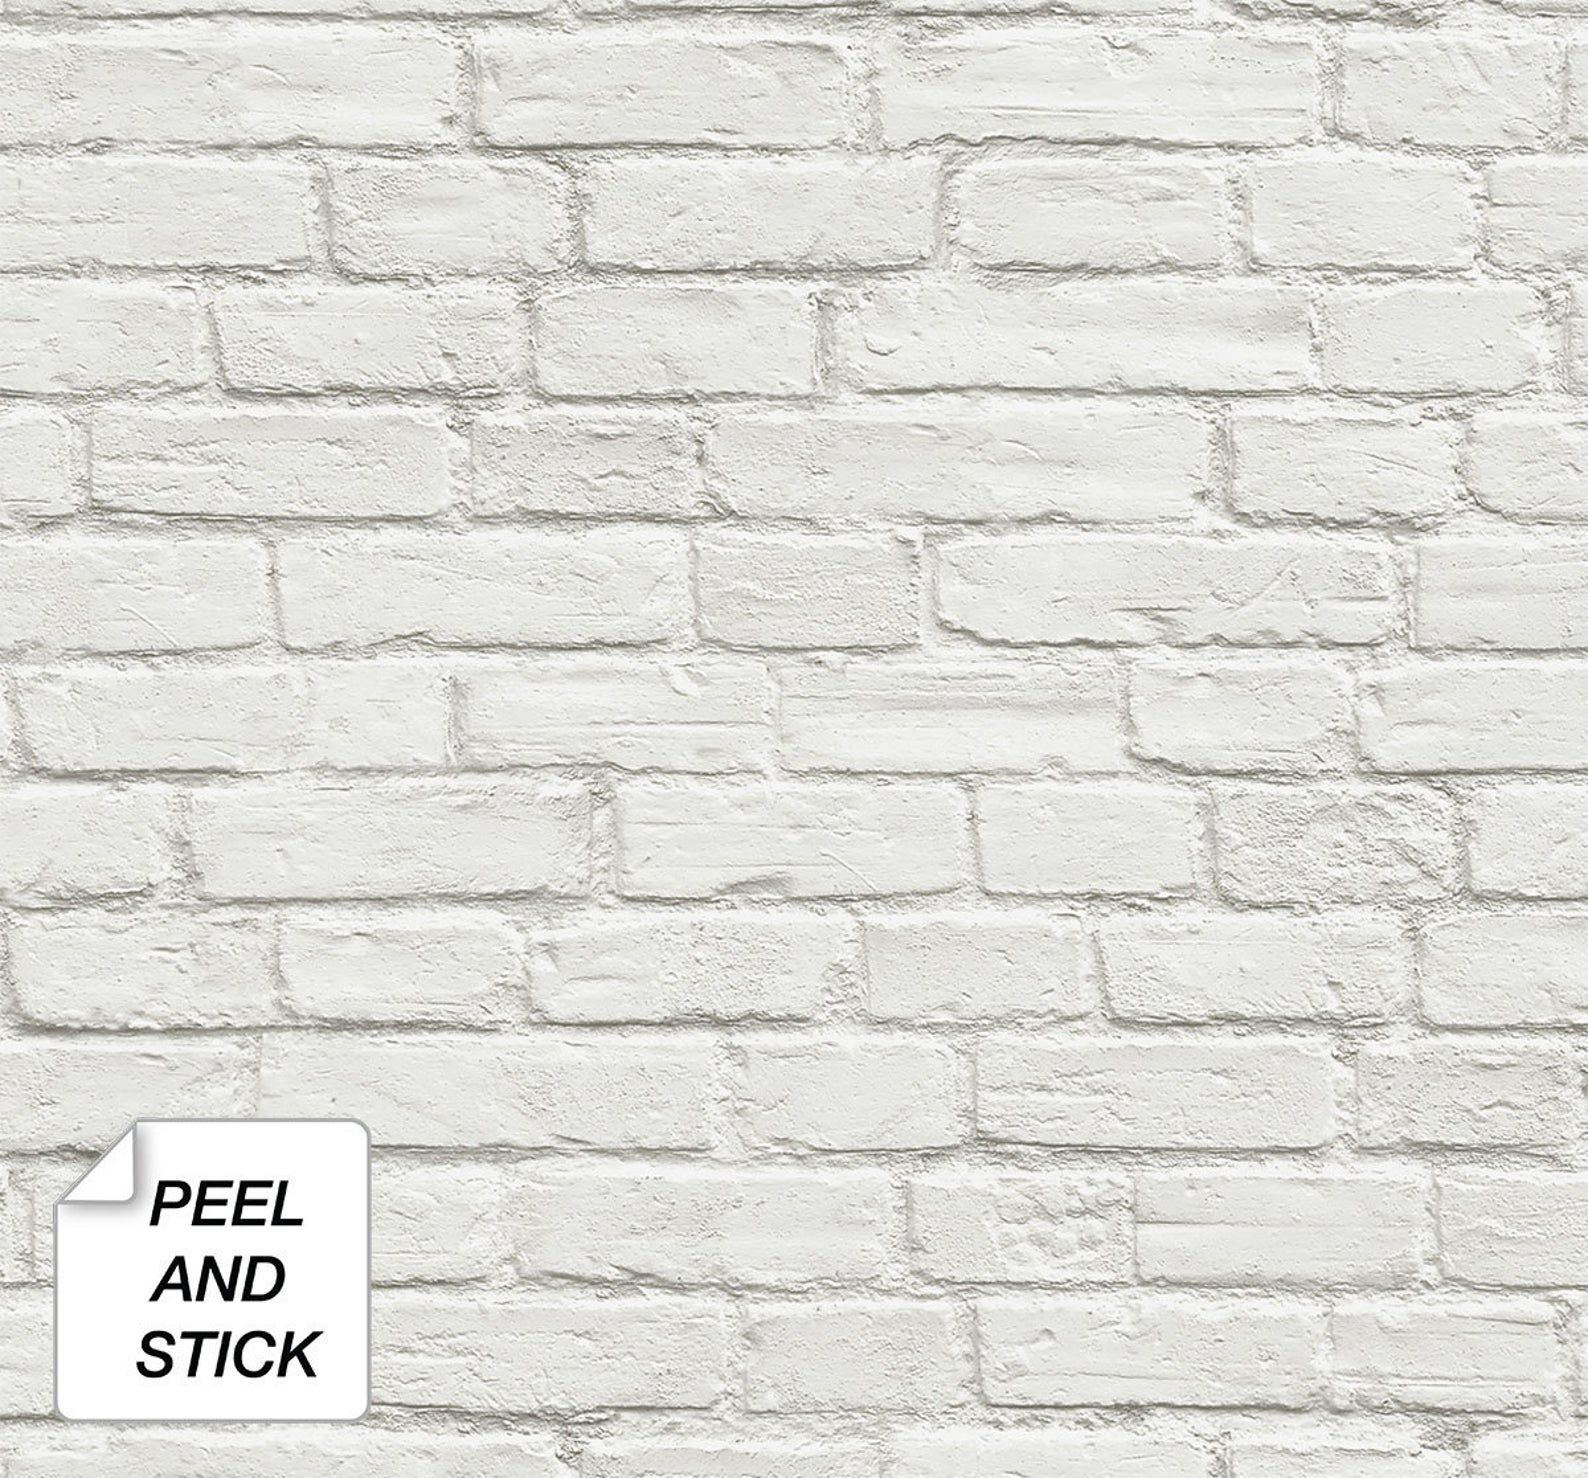 Peel And Stick Self Adhesive Wallpaper Brick Peel And Etsy In 2021 White Brick Wallpaper Removable Brick Wallpaper Brick Wallpaper